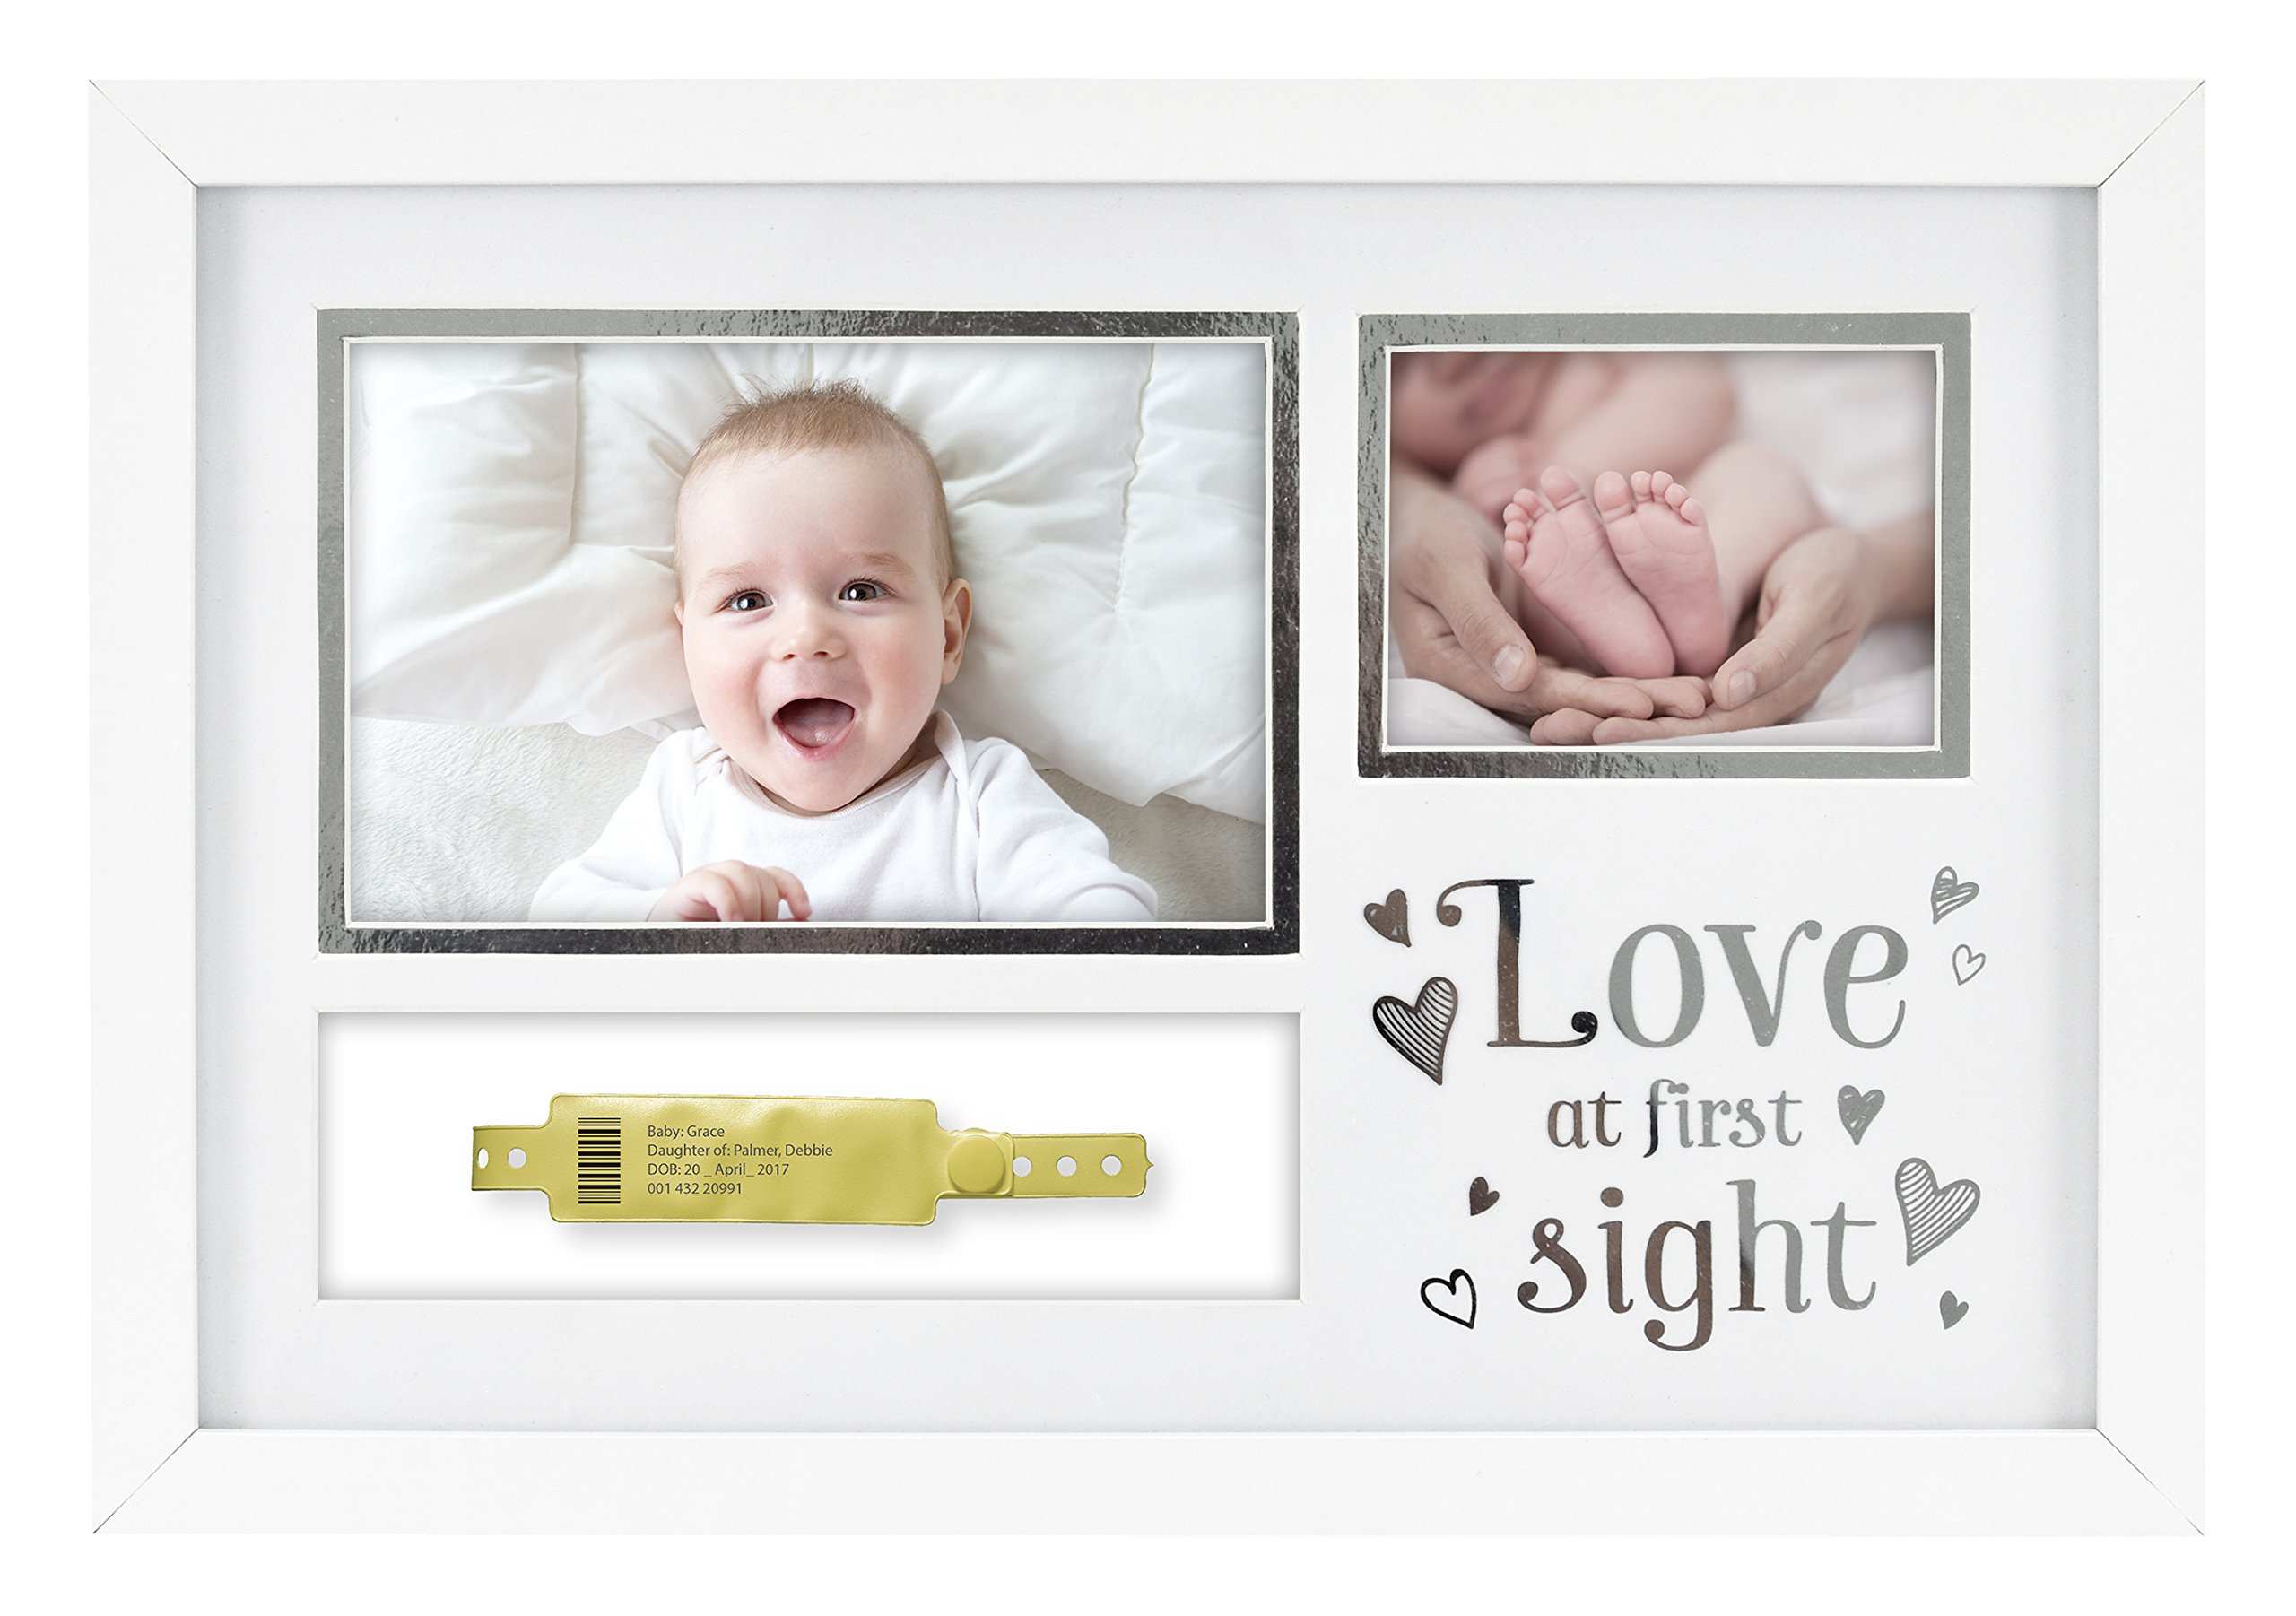 MCS ''Love at First Sight'' Baby Hospital ID Bracelet and Photo Frame (66891)